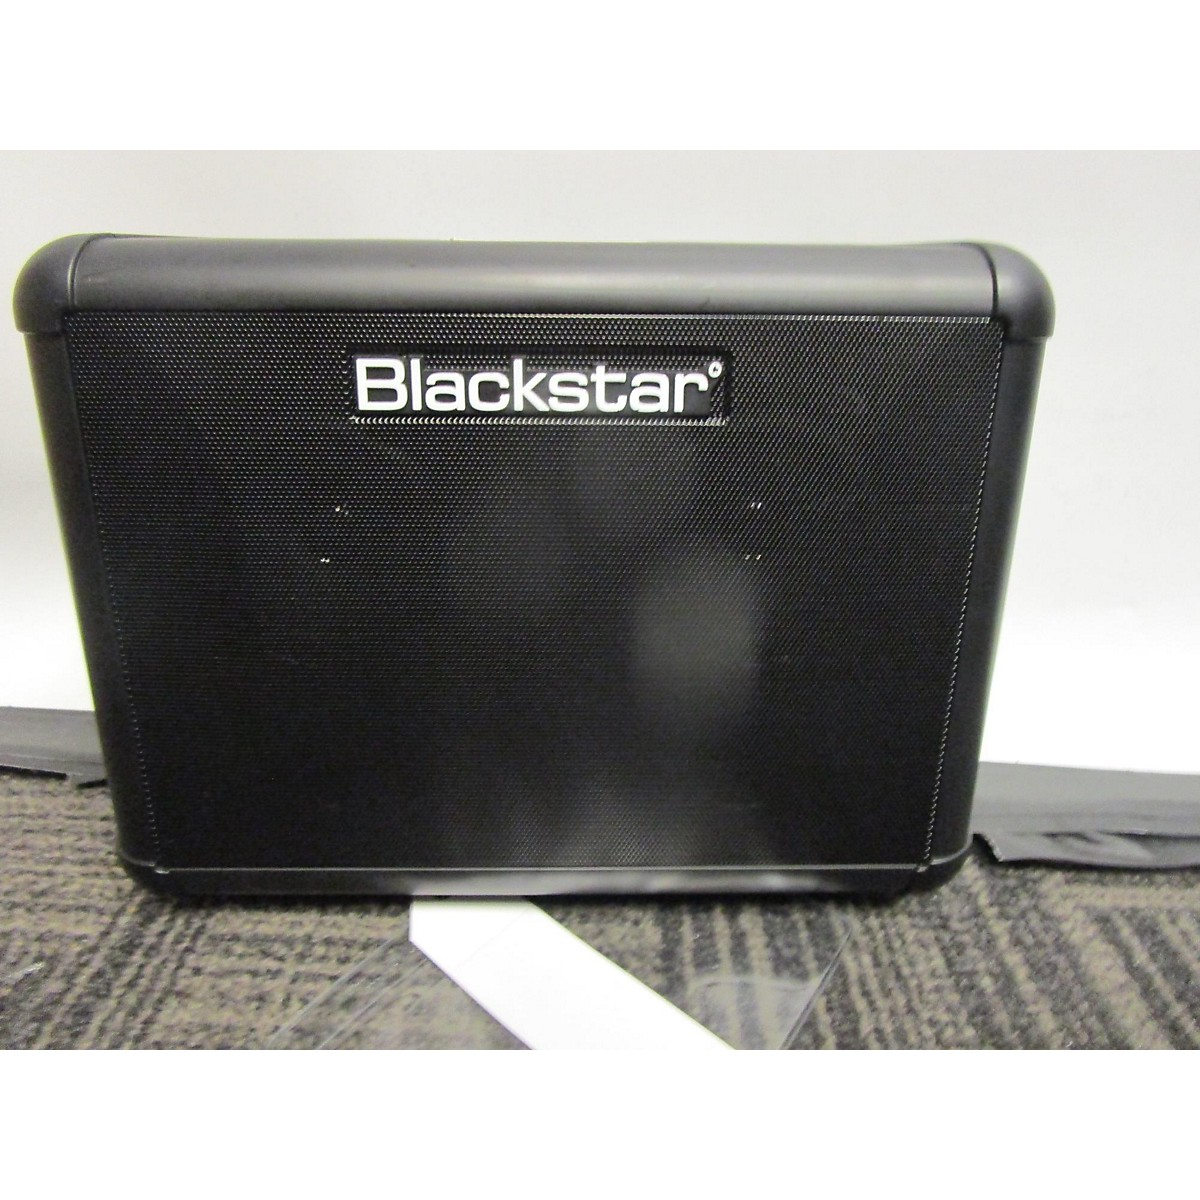 Blackstar Super Fly Battery Powered Amp